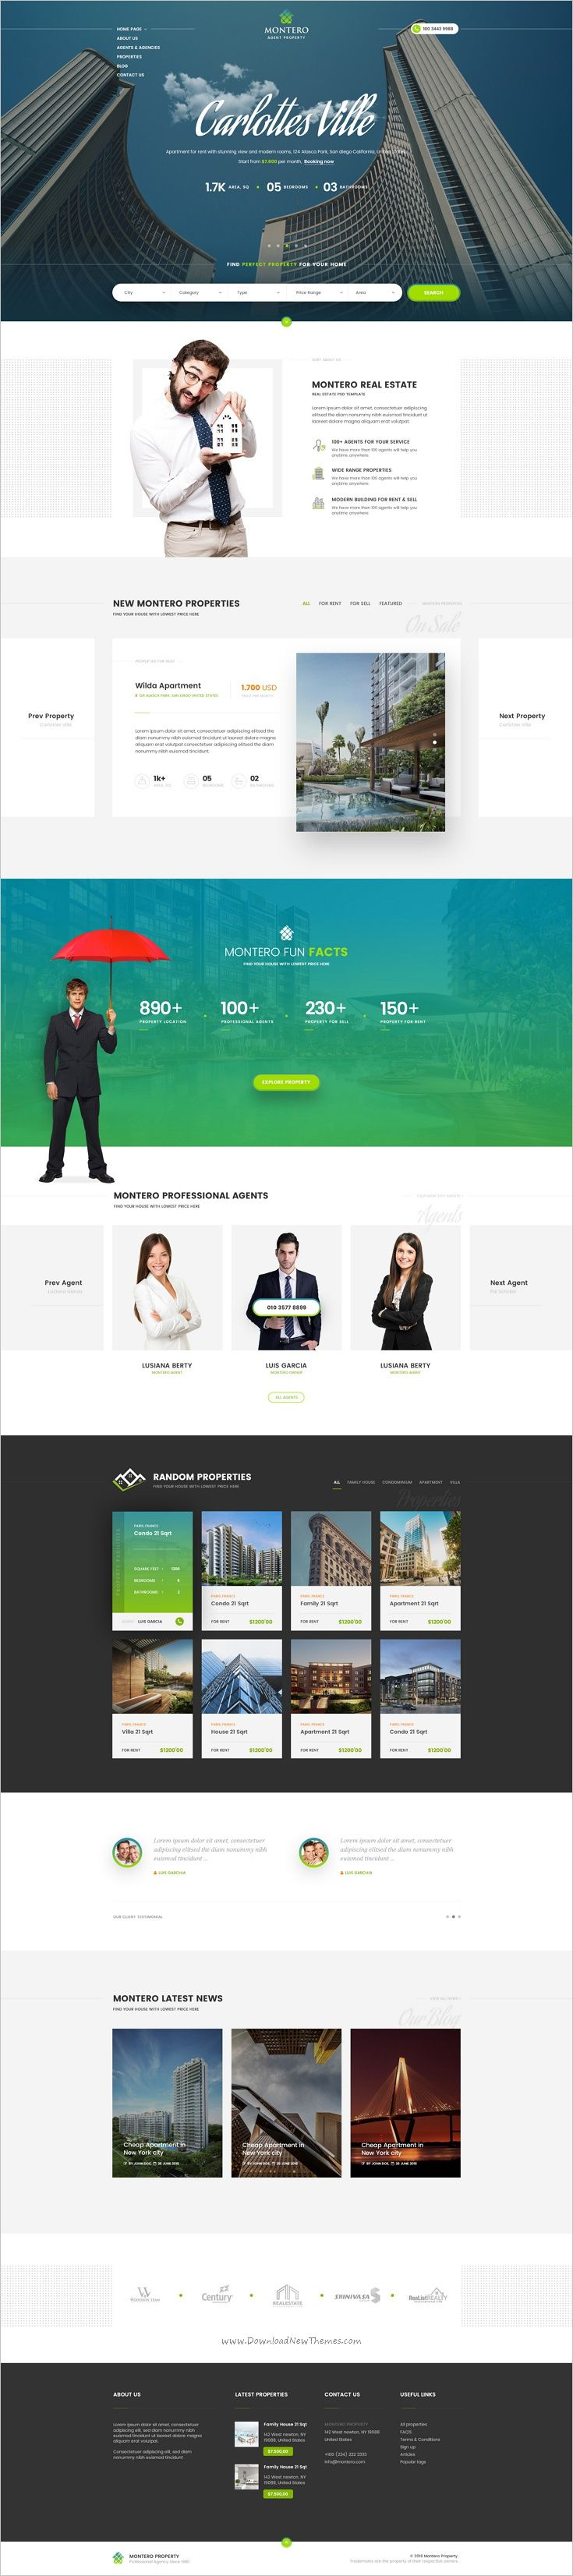 Montero is beautifully design premium #PSD template for #webdesign real estate and #property company website download now➩ https://themeforest.net/item/montero-real-estate-property-psd-template/18964920?ref=Datasata